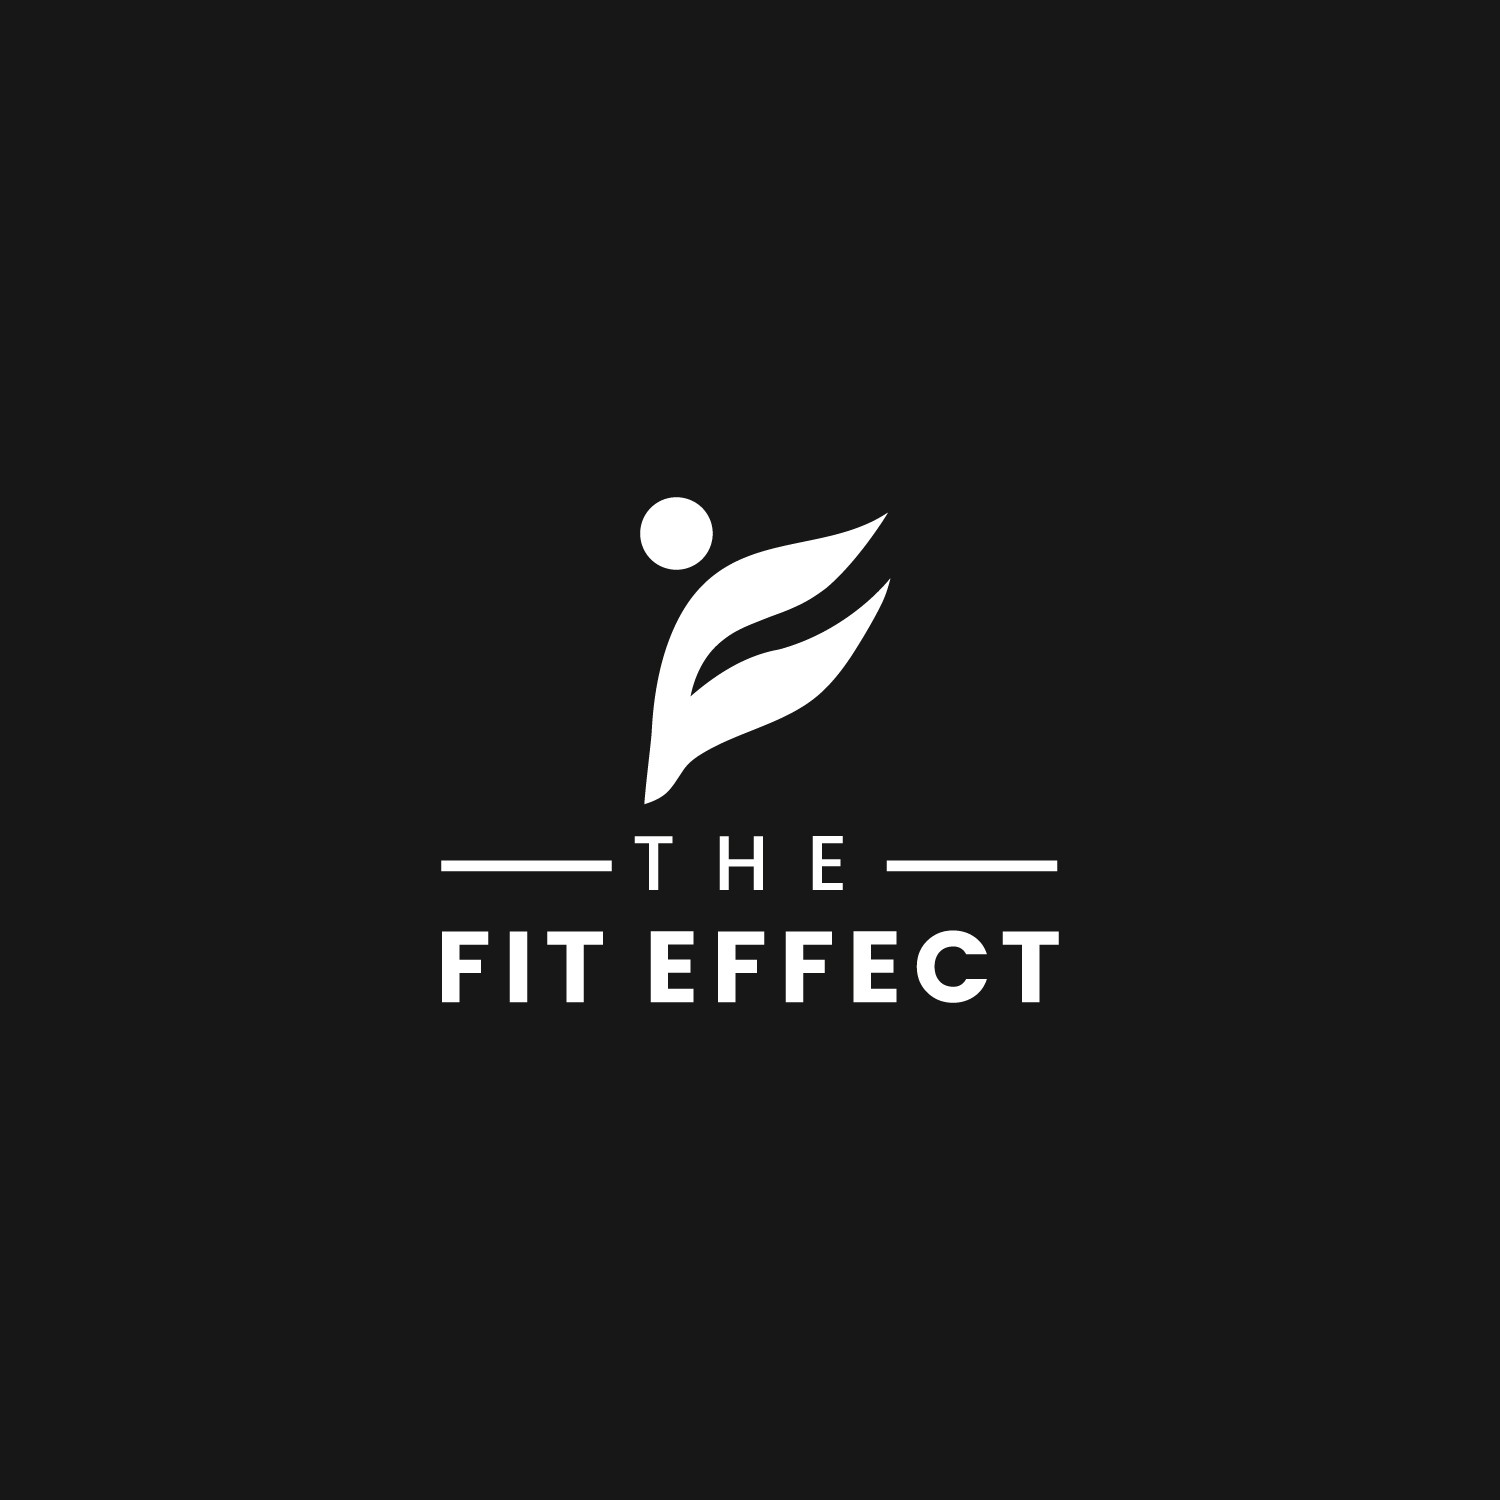 Creative logo for fitness company focusing on women's empowerment